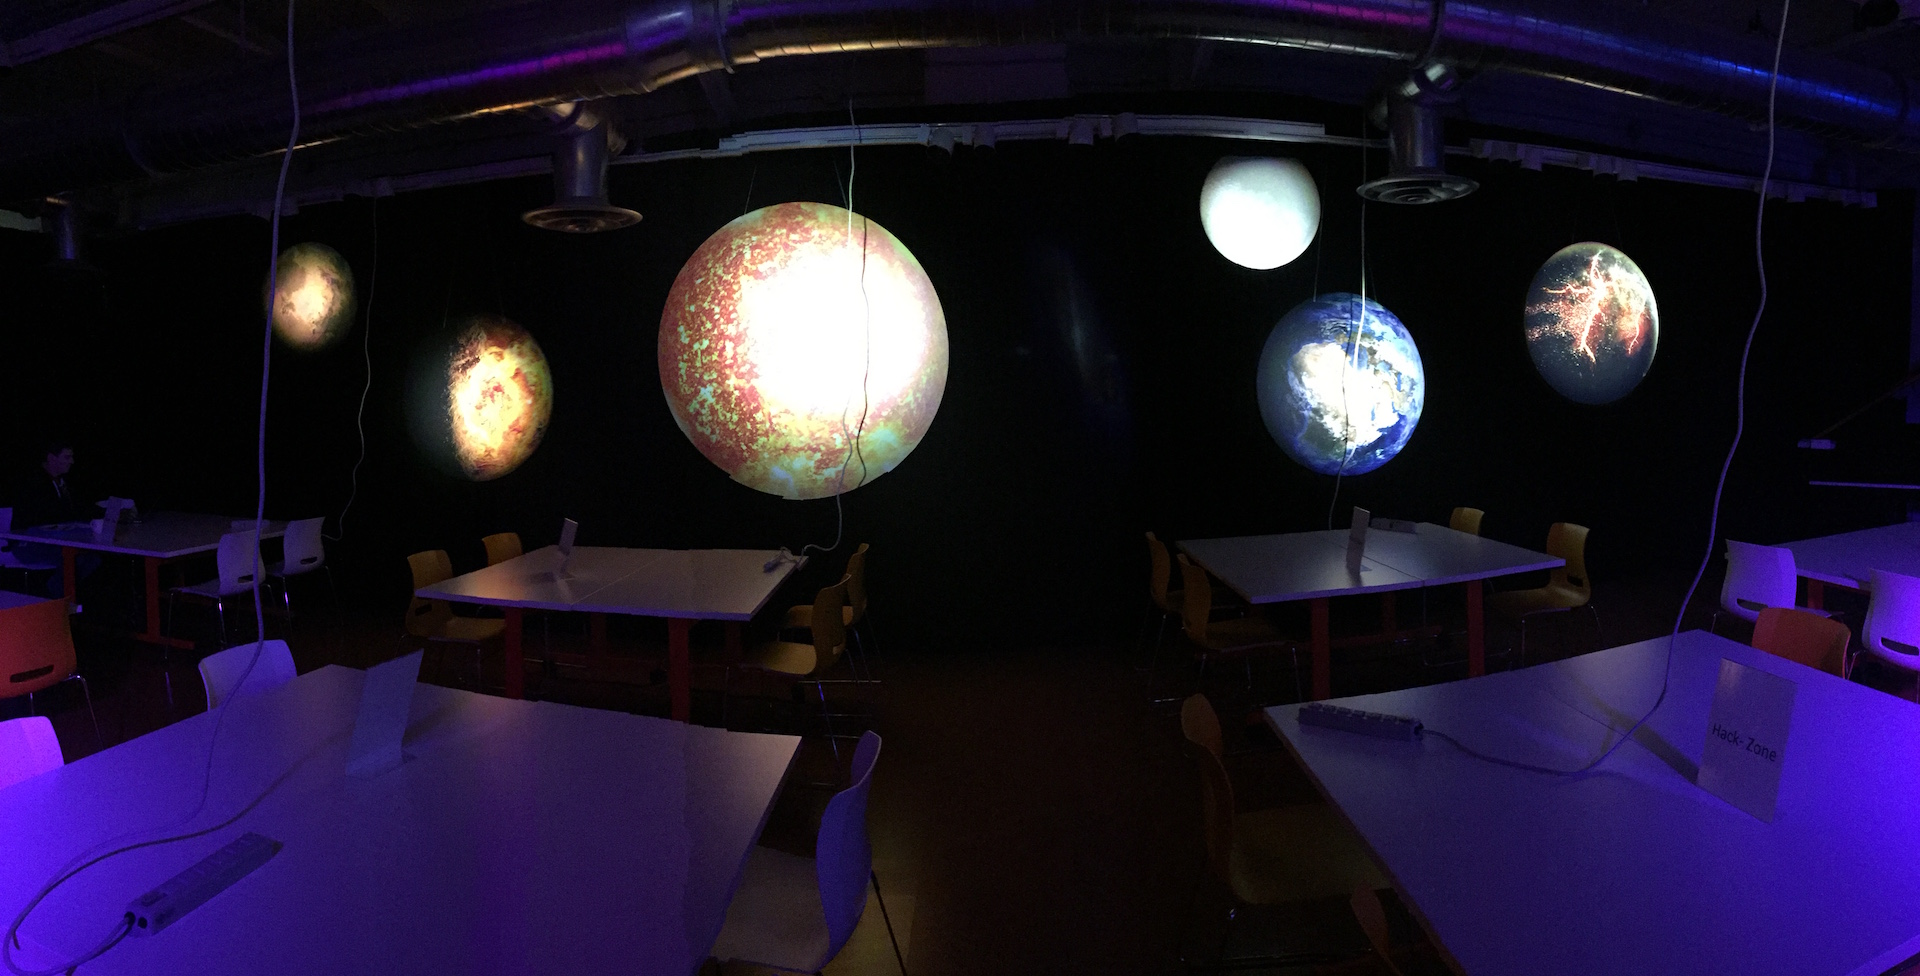 Thick, quality custom signs create a planetary solar system for a space themed hackathon